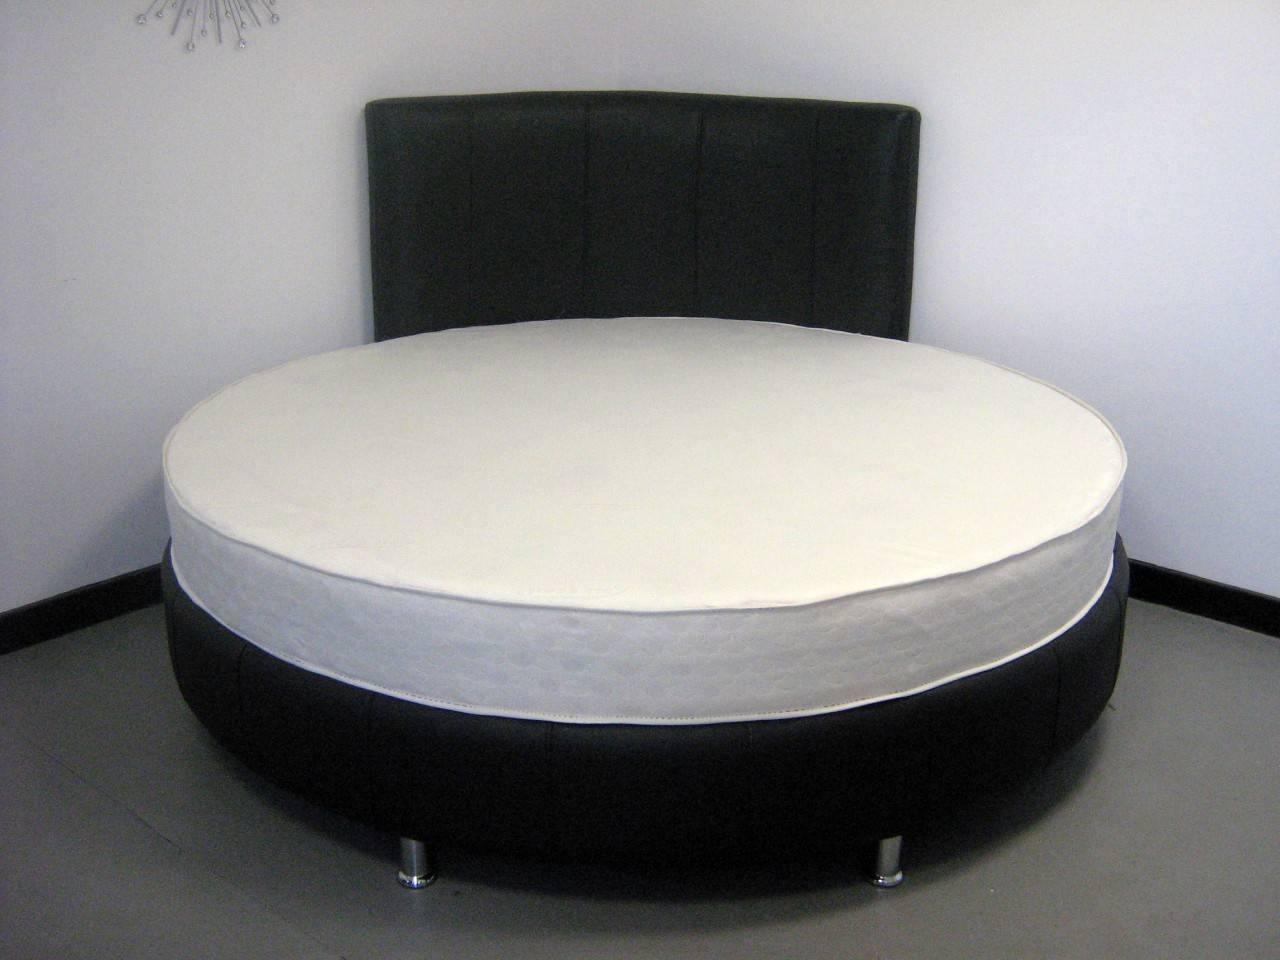 Unique Round Bed Ideas Give Your Bedroom Distinct Look